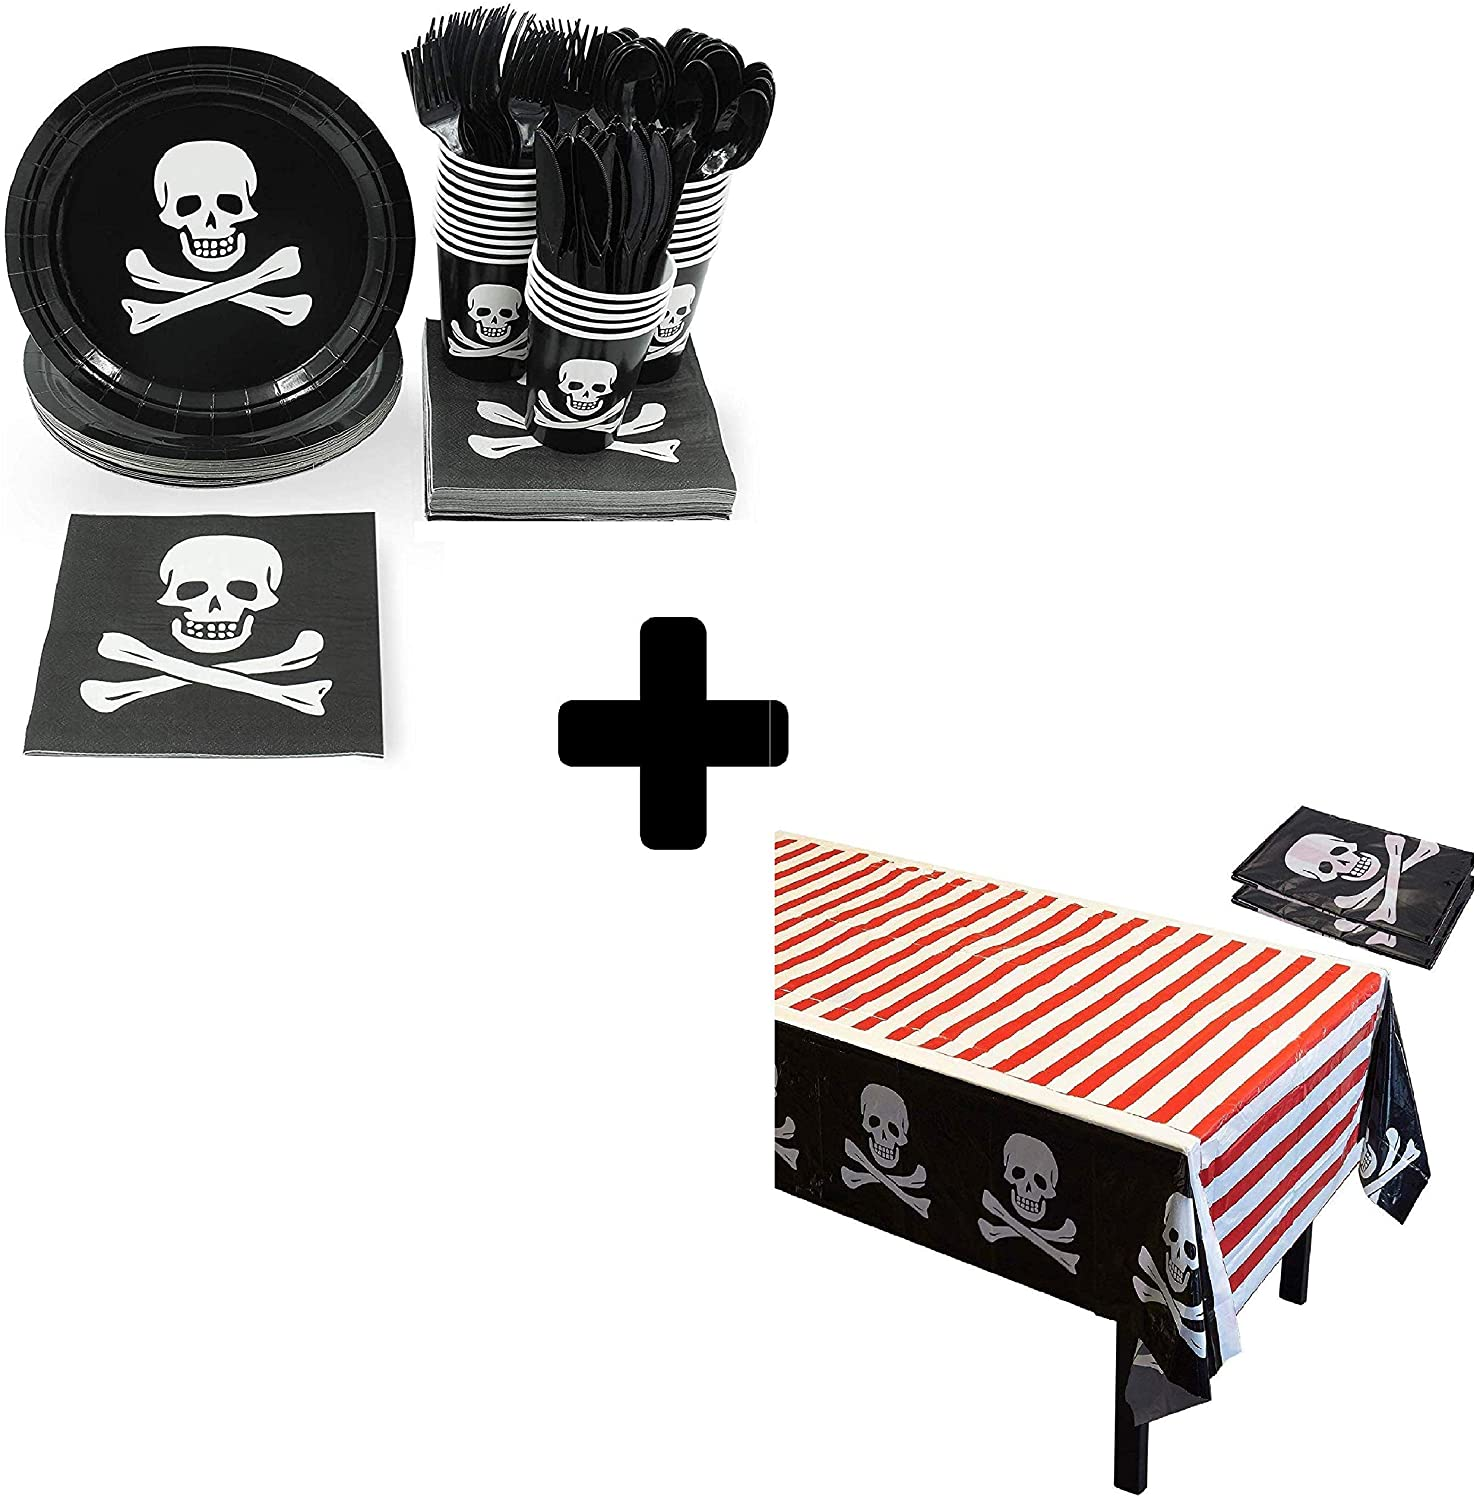 Pirate Party Bundle with Disposable Tableware and Tablecloths (147 Pieces)